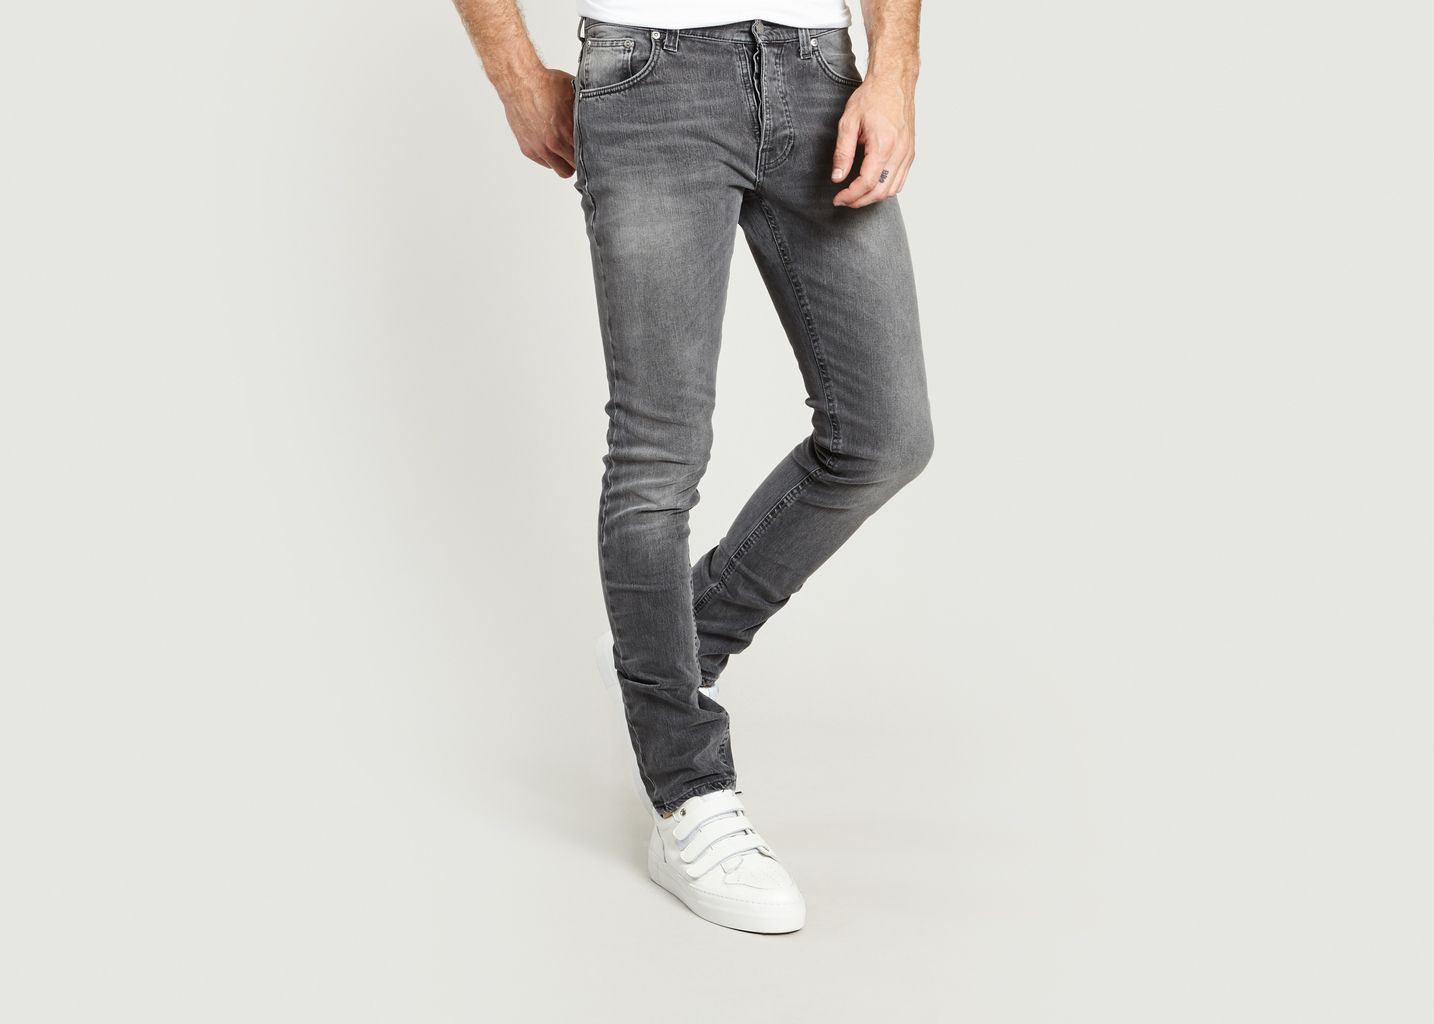 c08e7dc13e6 Tilted Tor Jeans Grey Nudie Jeans